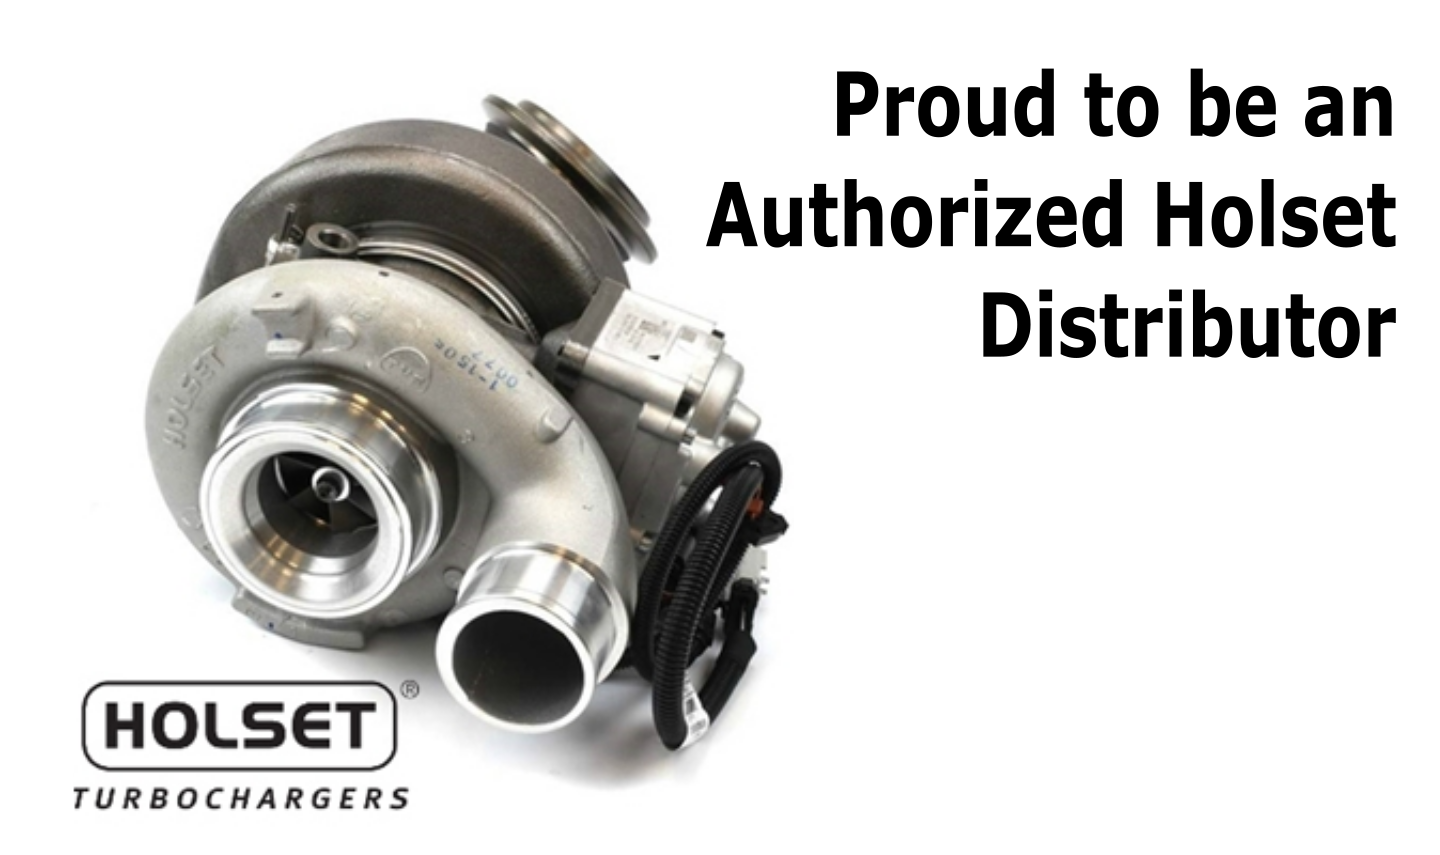 High Tech Turbo Aftermarket Diesel Turbo Parts & Kits